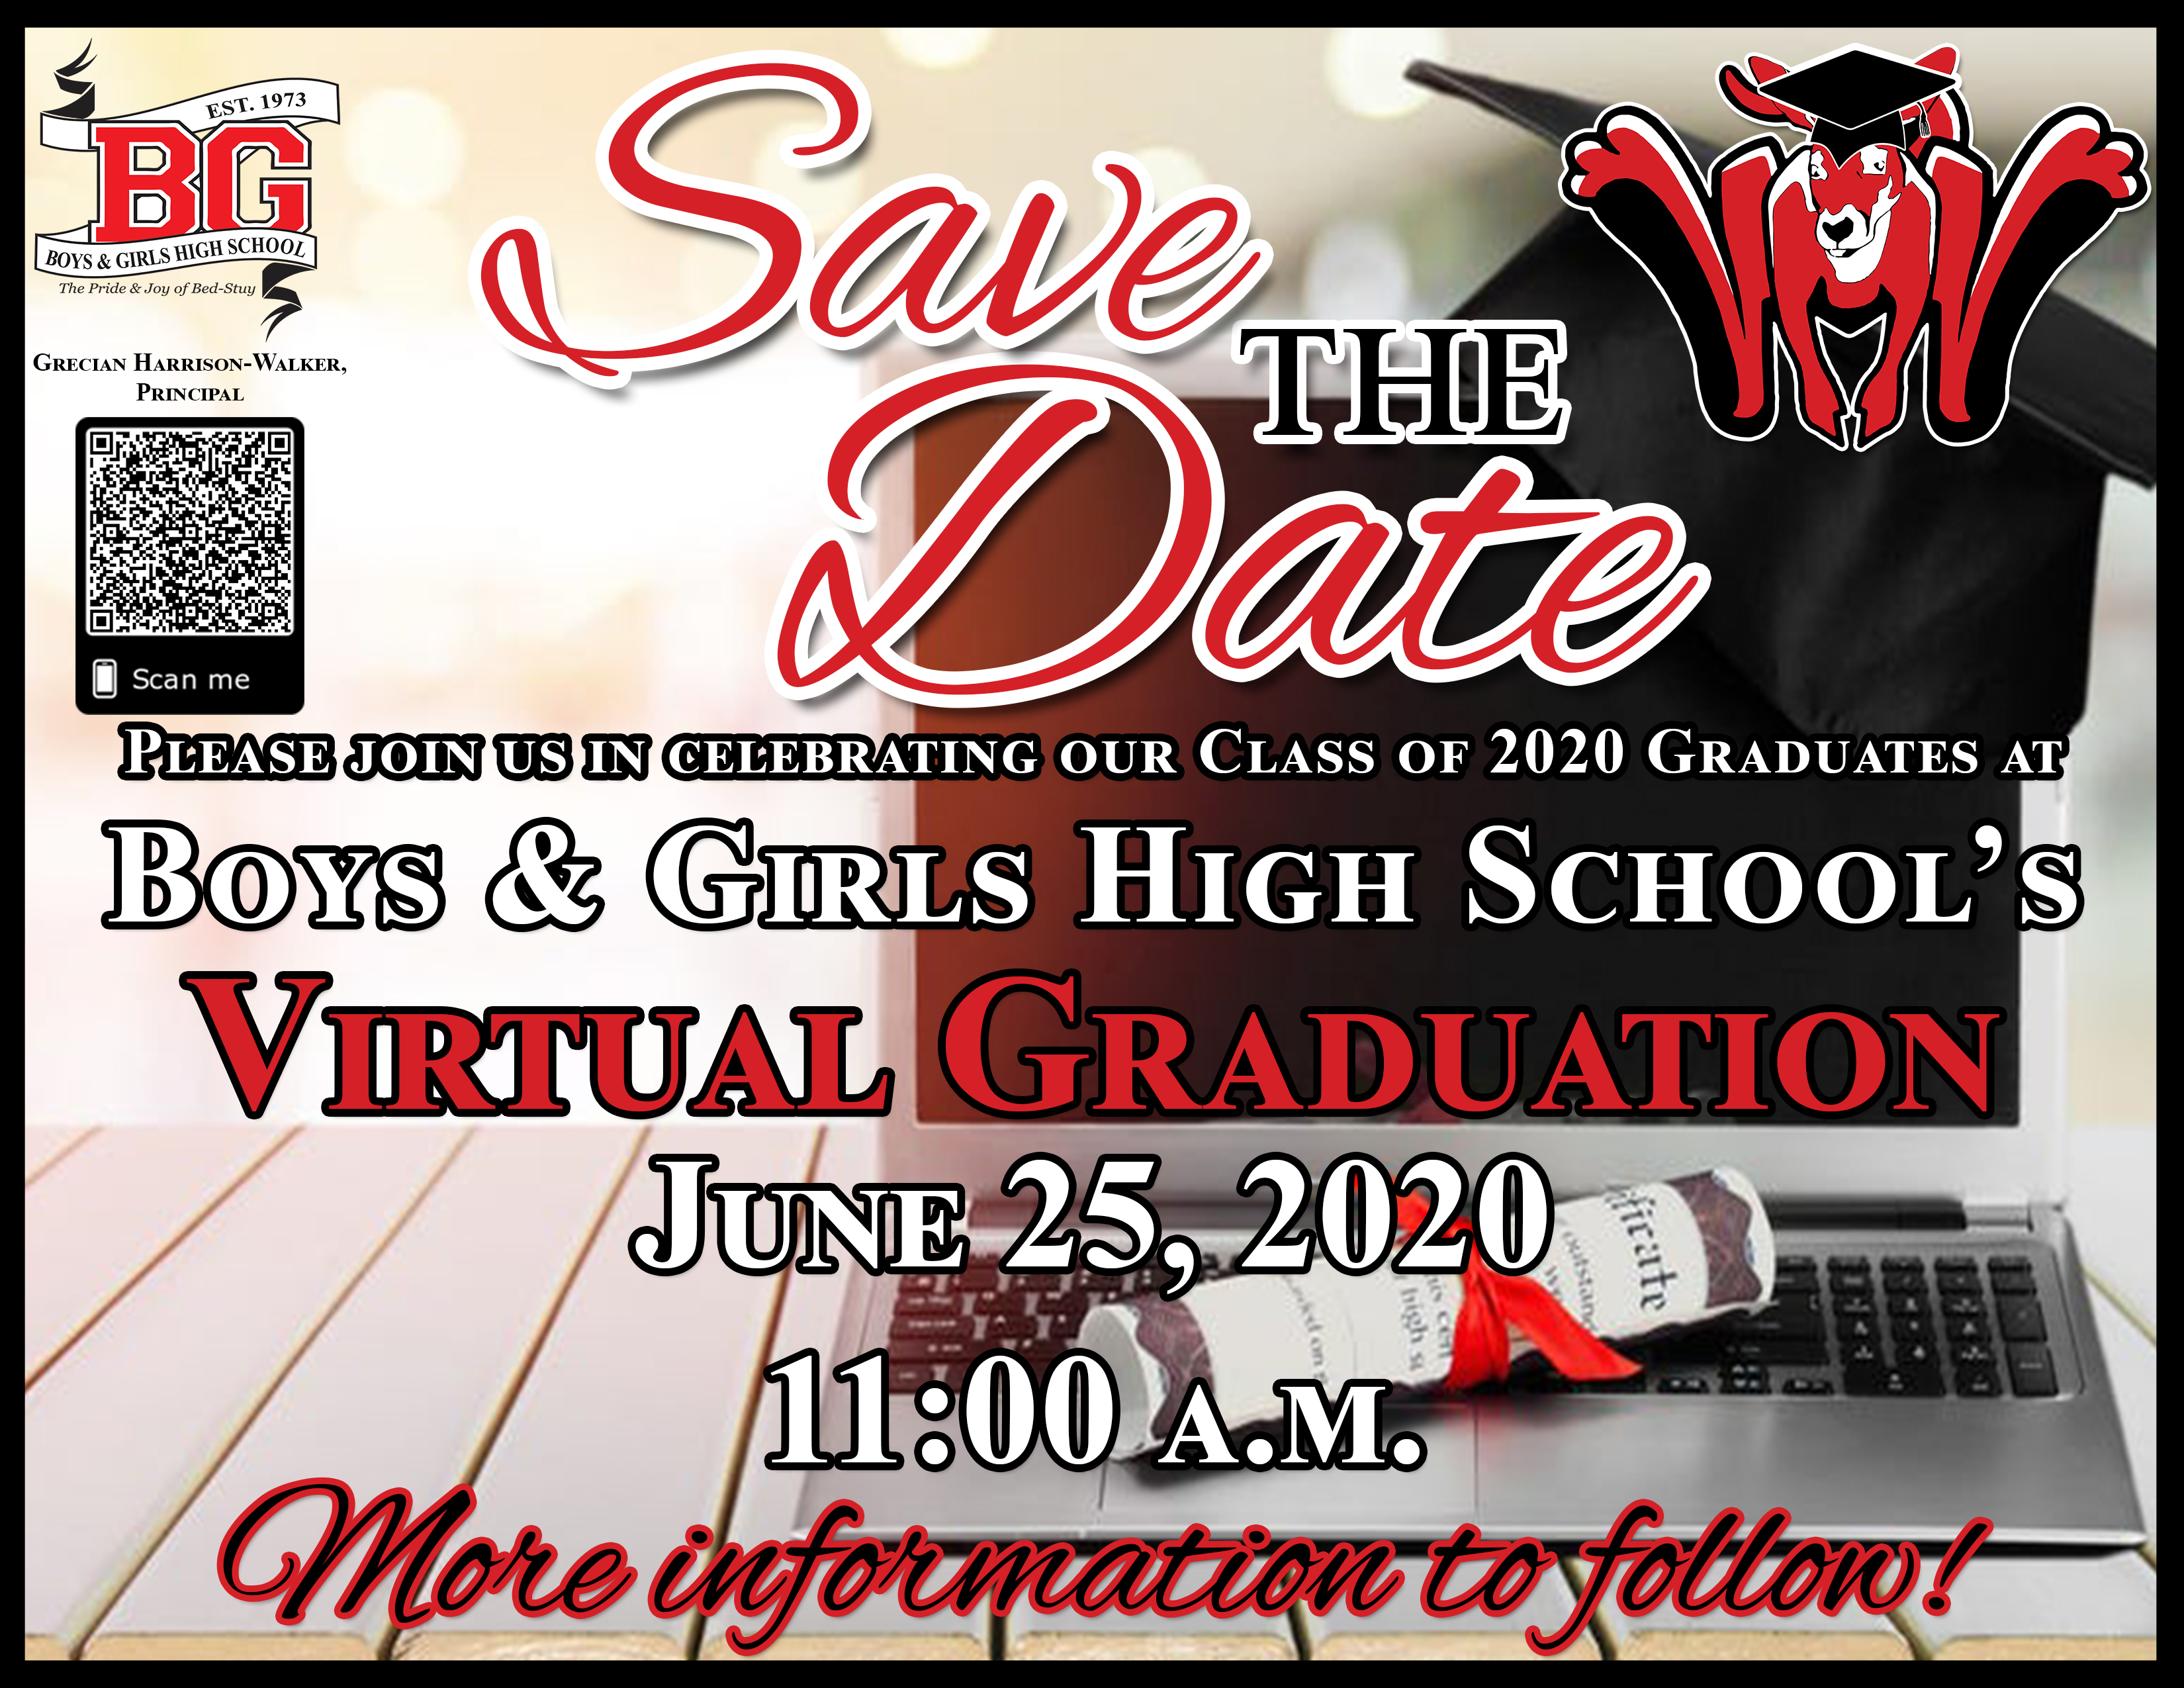 BGHS Virtual Graduation -  Save the Date